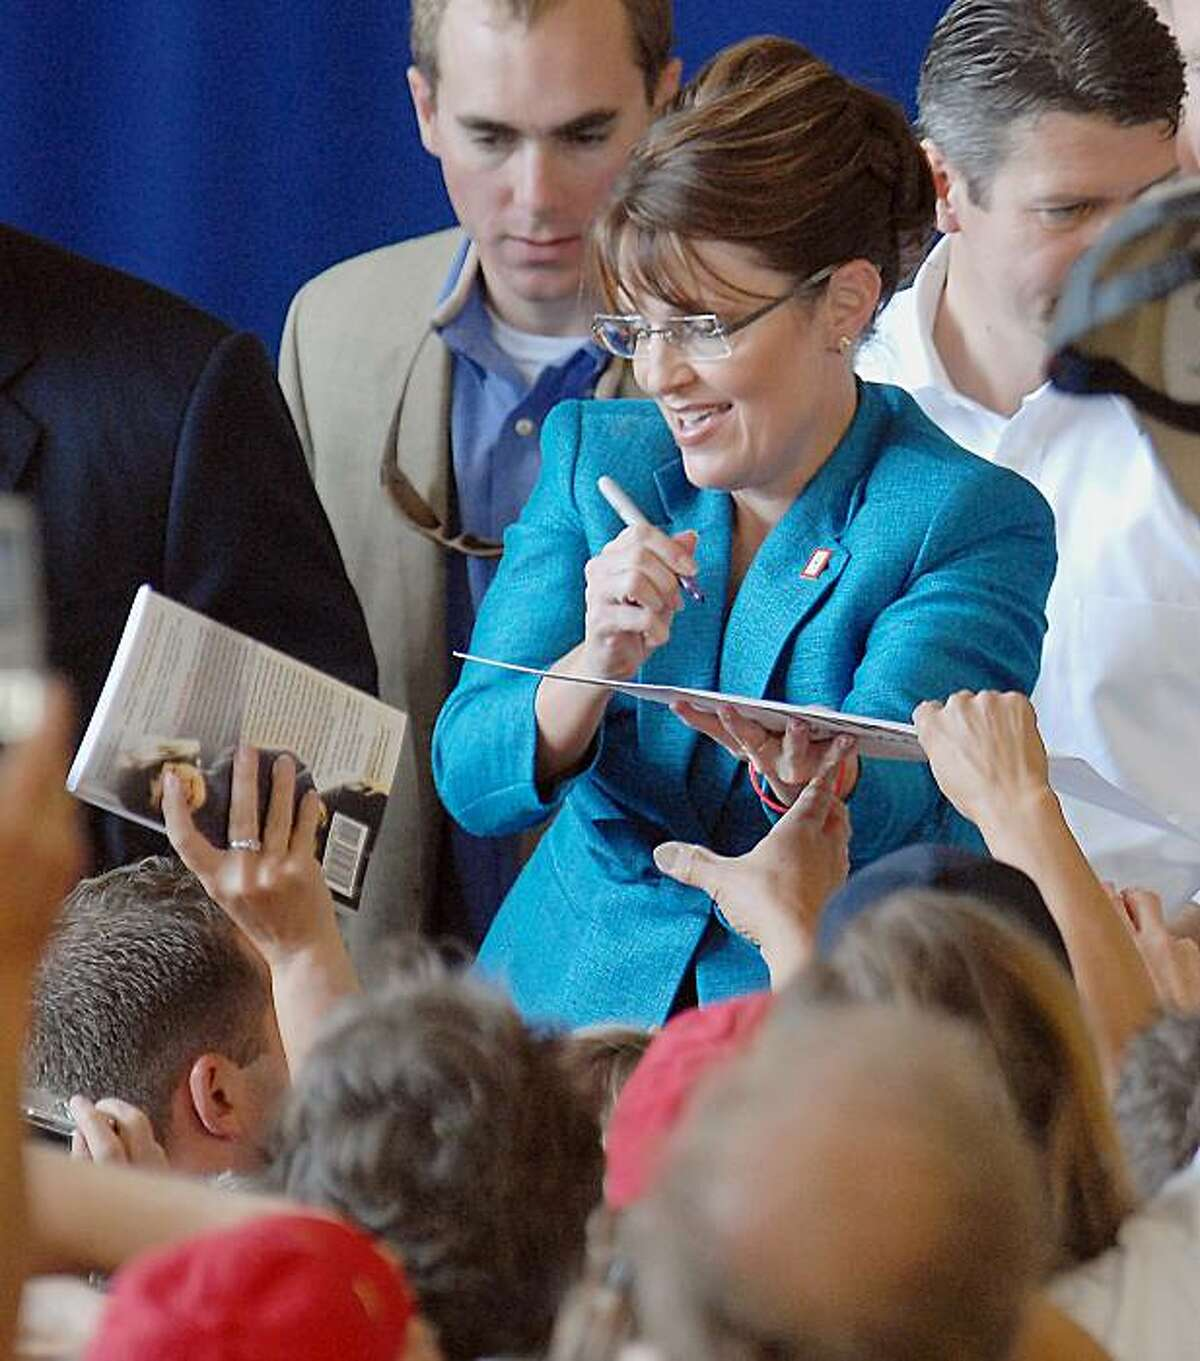 Republican vice presidential candidate, Alaska Gov. Sarah Palin, signs autographs, Friday, Sept. 19,2008, during a rally at the Anoka County Airport in Blaine, Minn. (AP Photo/Janet Hostetter)